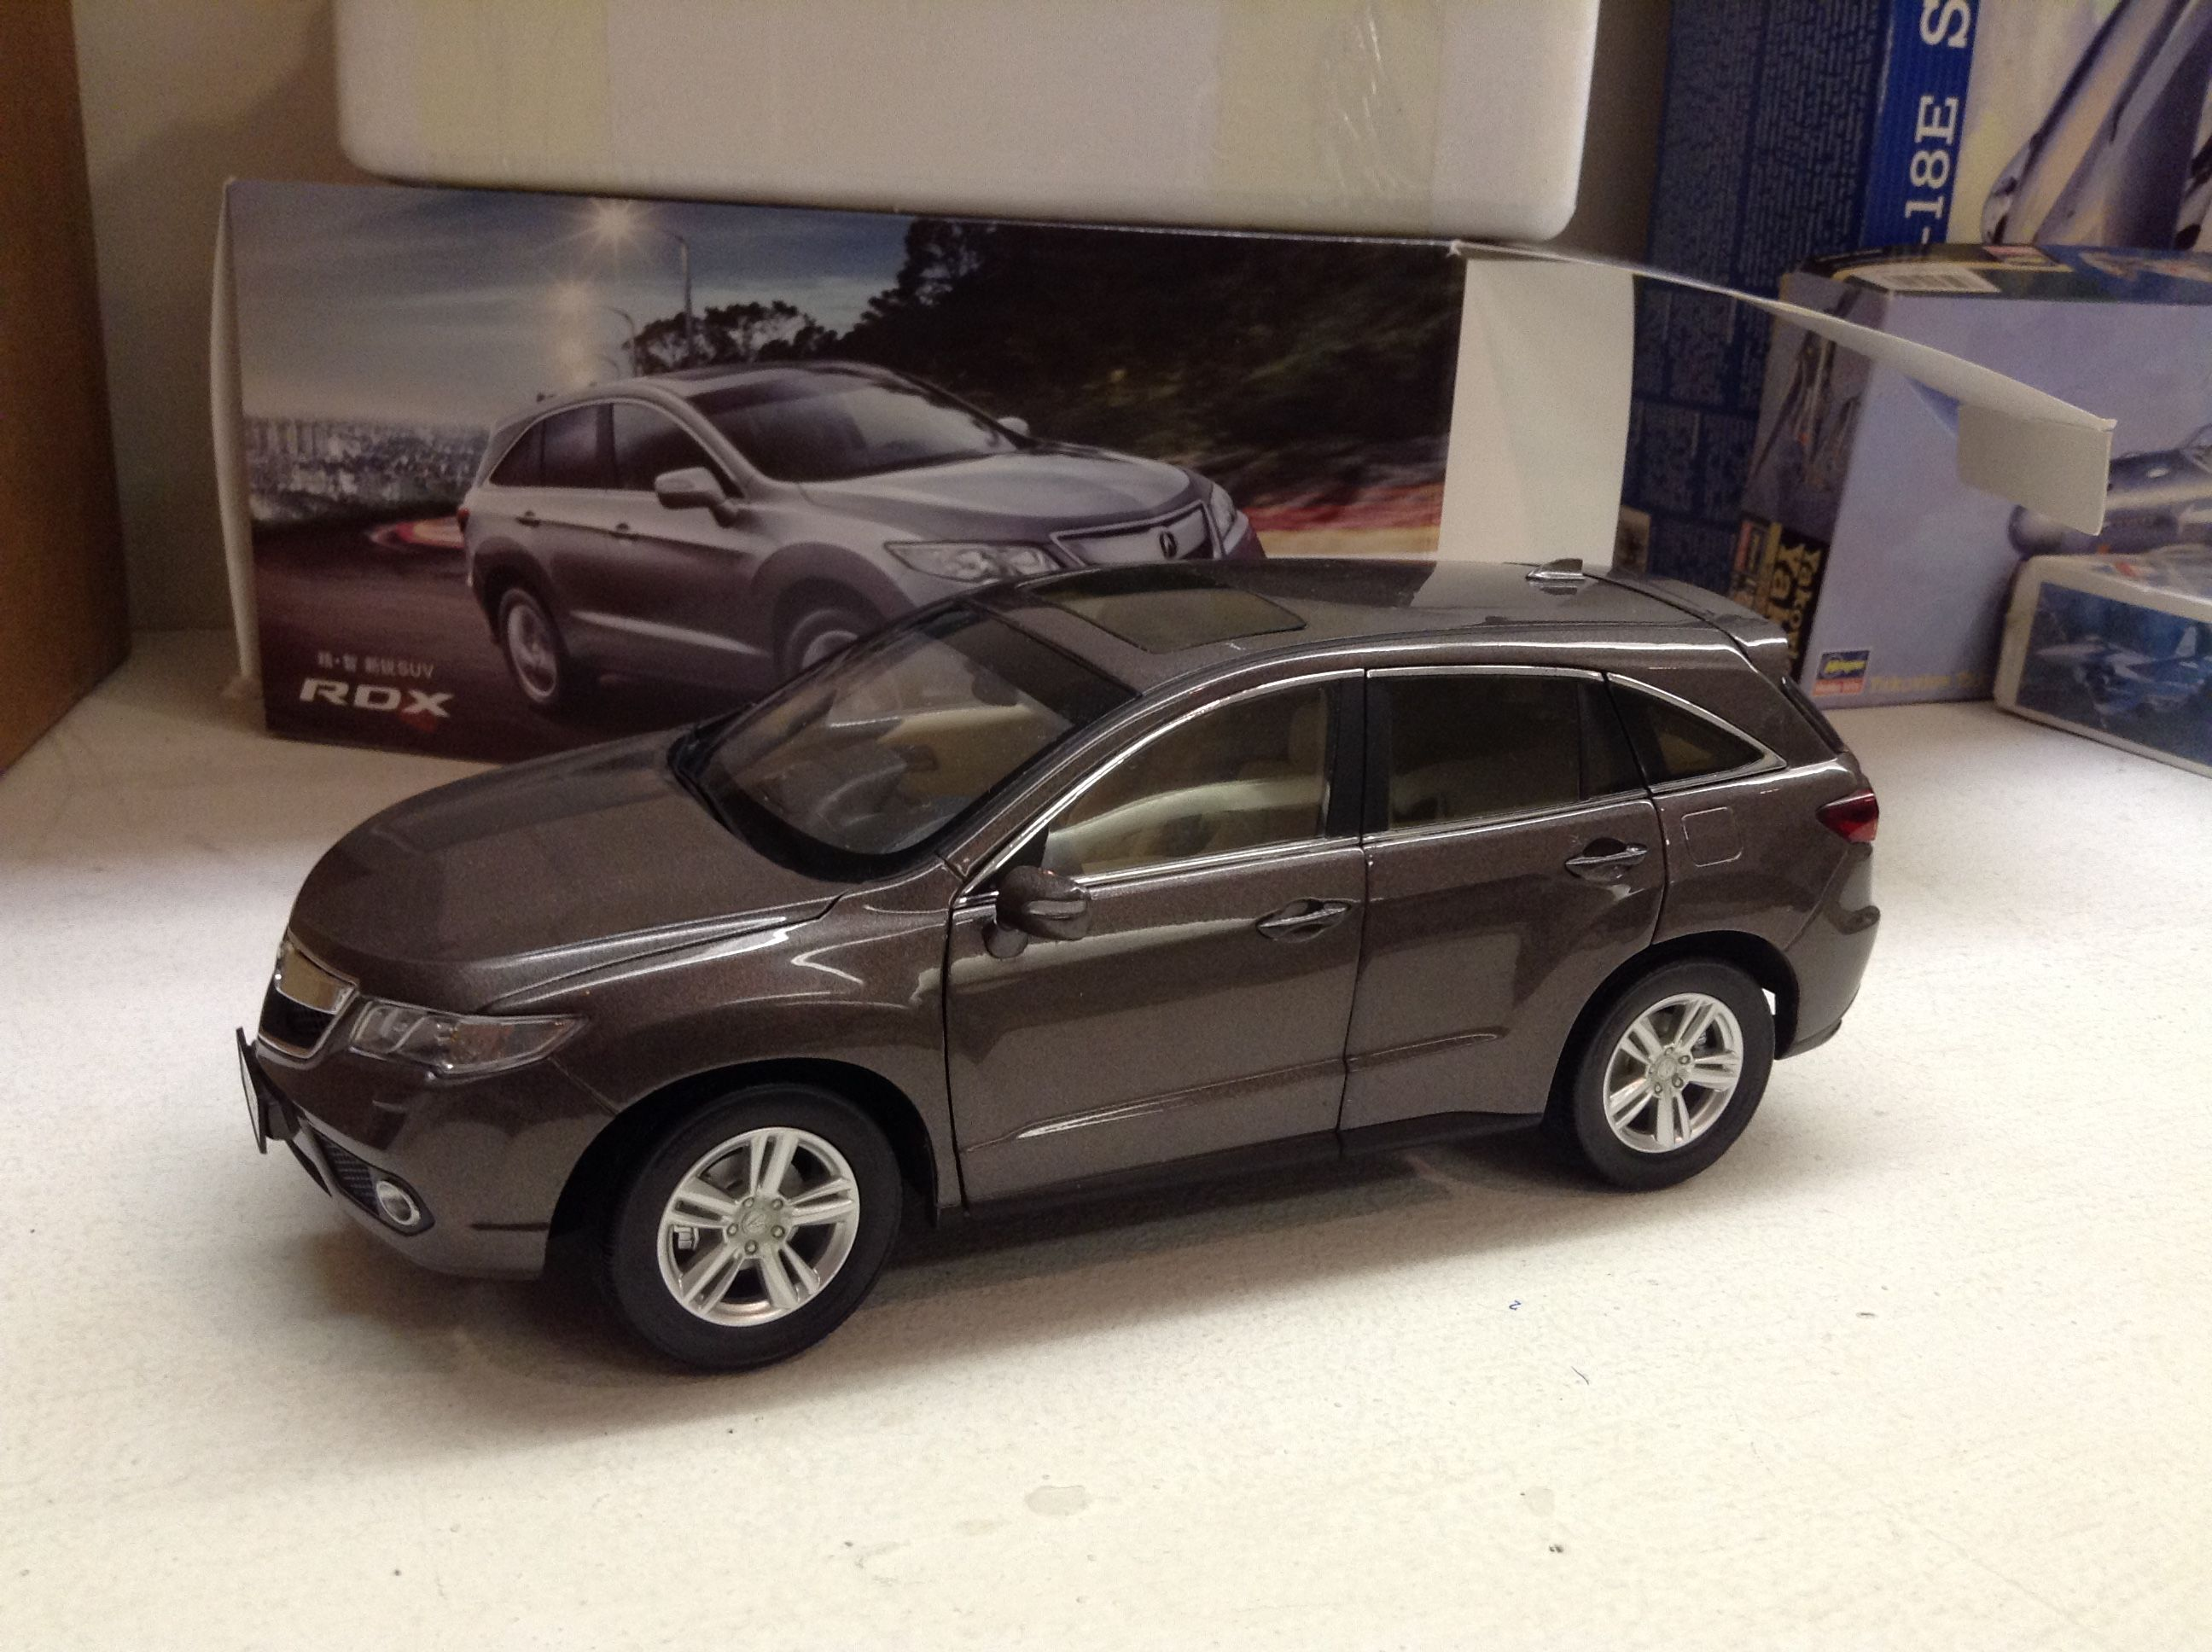 Ghostbusters toys car  Acura RDX by paudi  Model cars  Pinterest  Acura rdx Model car